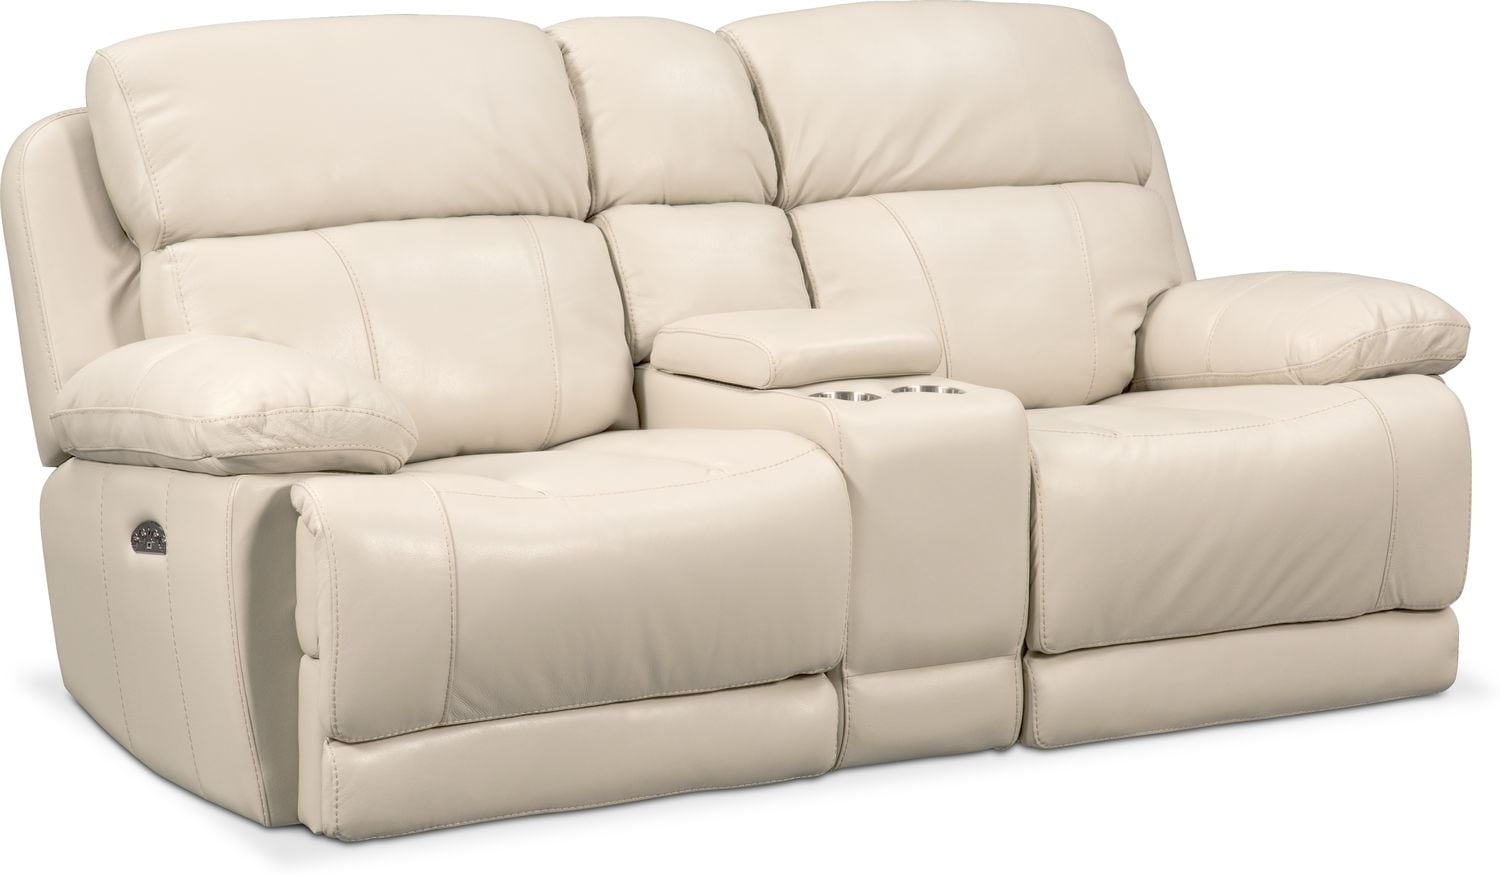 Monte carlo dual power reclining sofa and reclining Power reclining sofas and loveseats